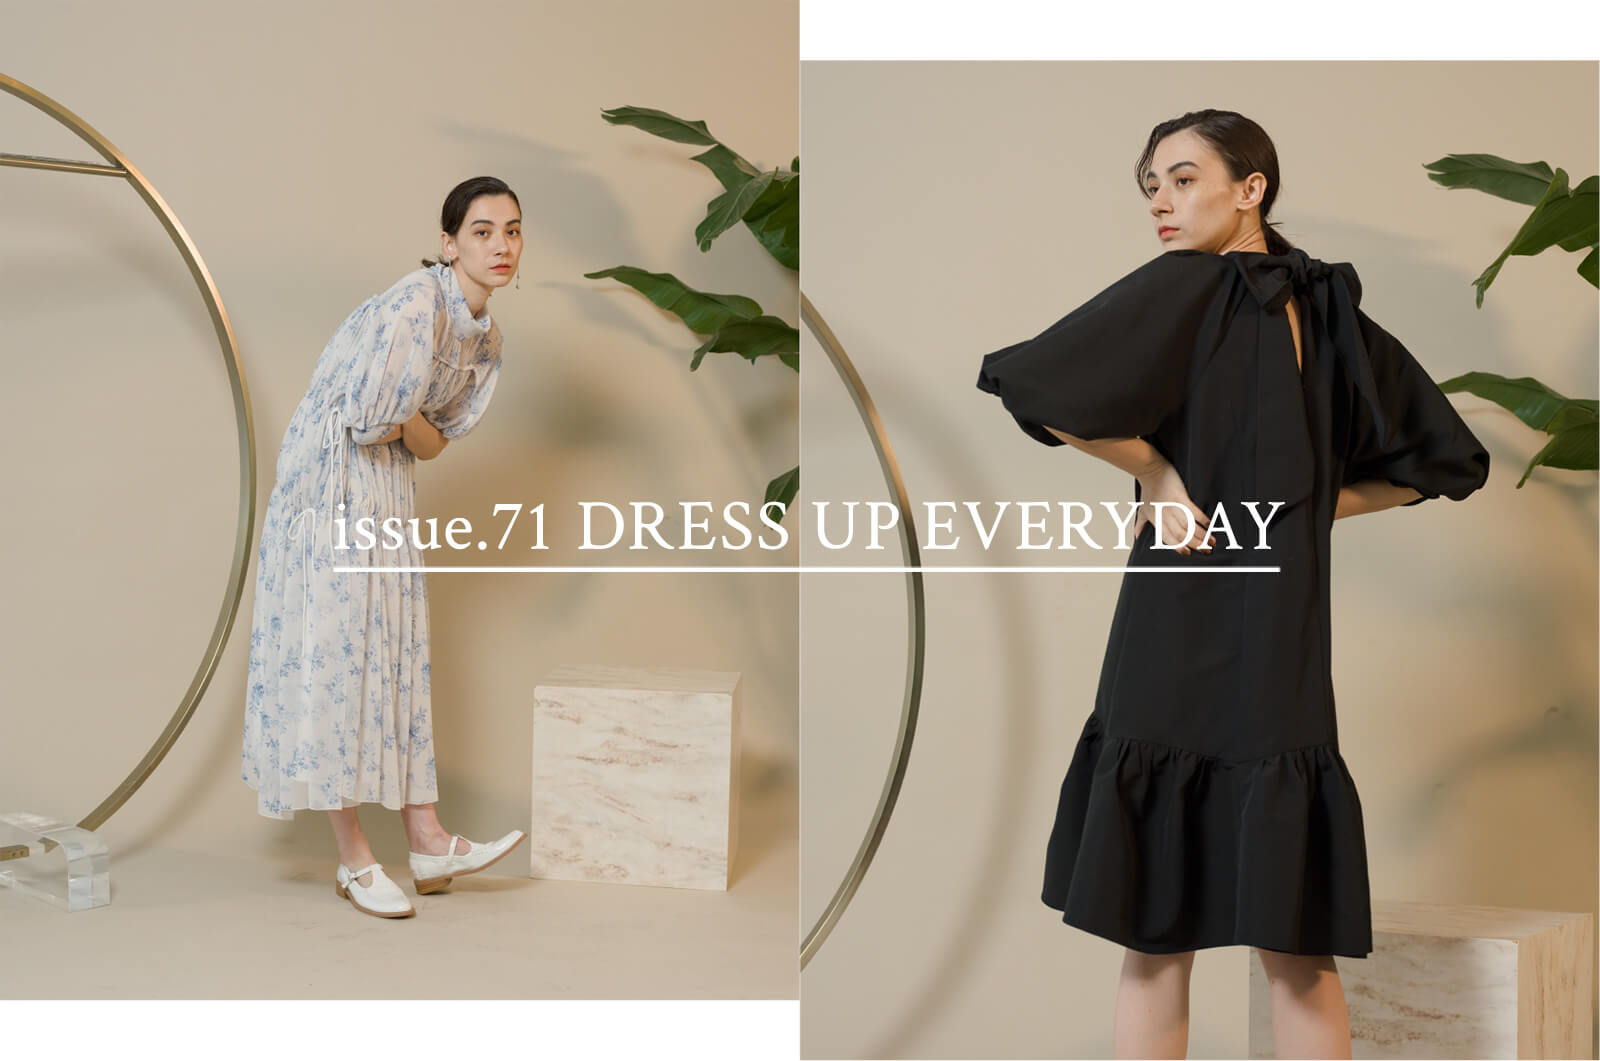 ISSUE.71 DRESS UP EVERYDAY